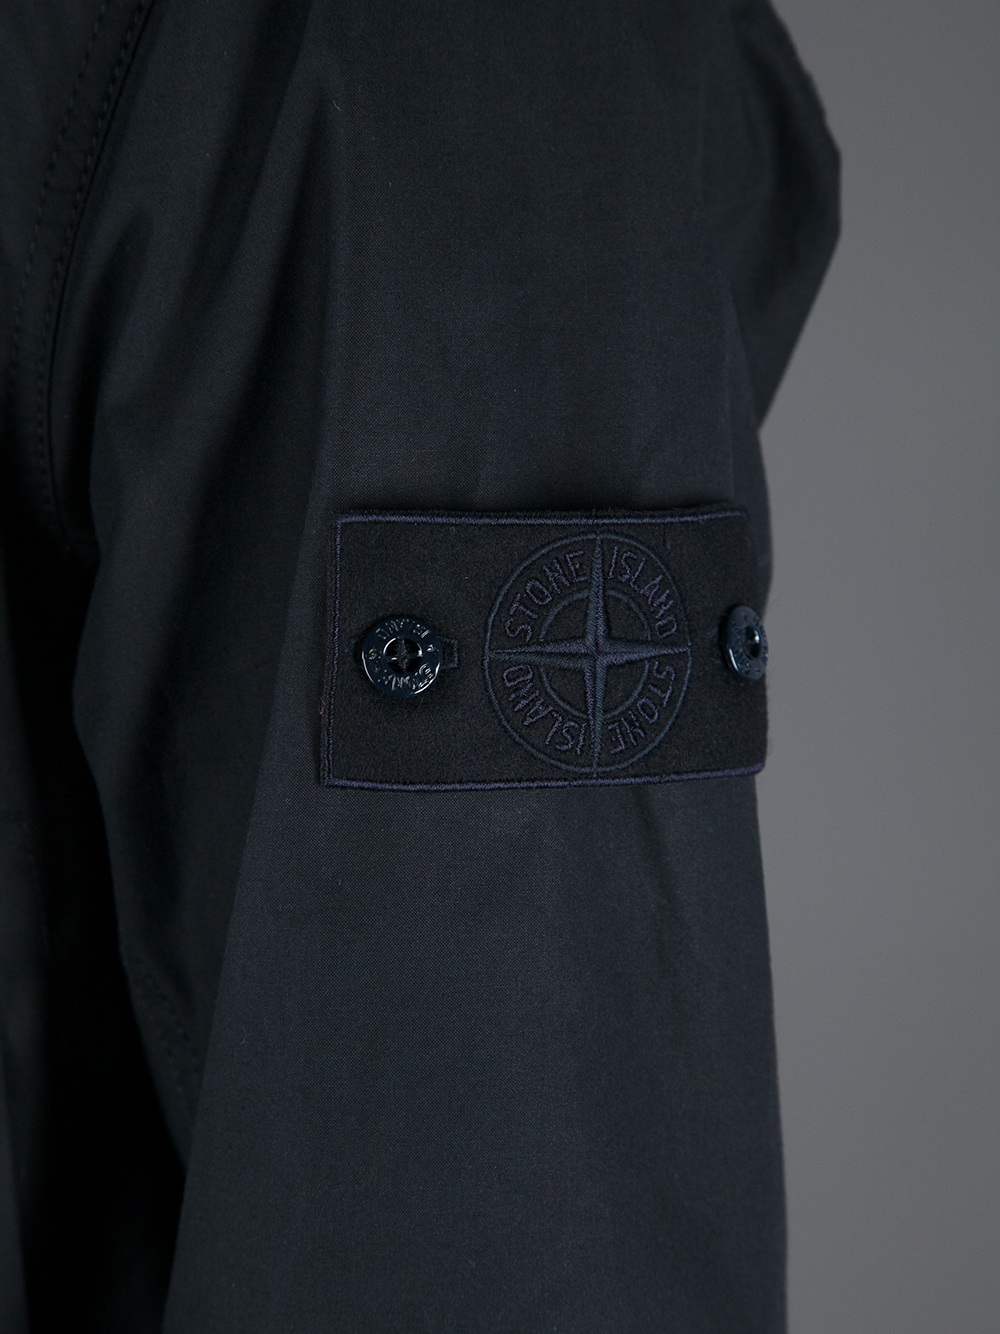 Brown Stone Island Jacket